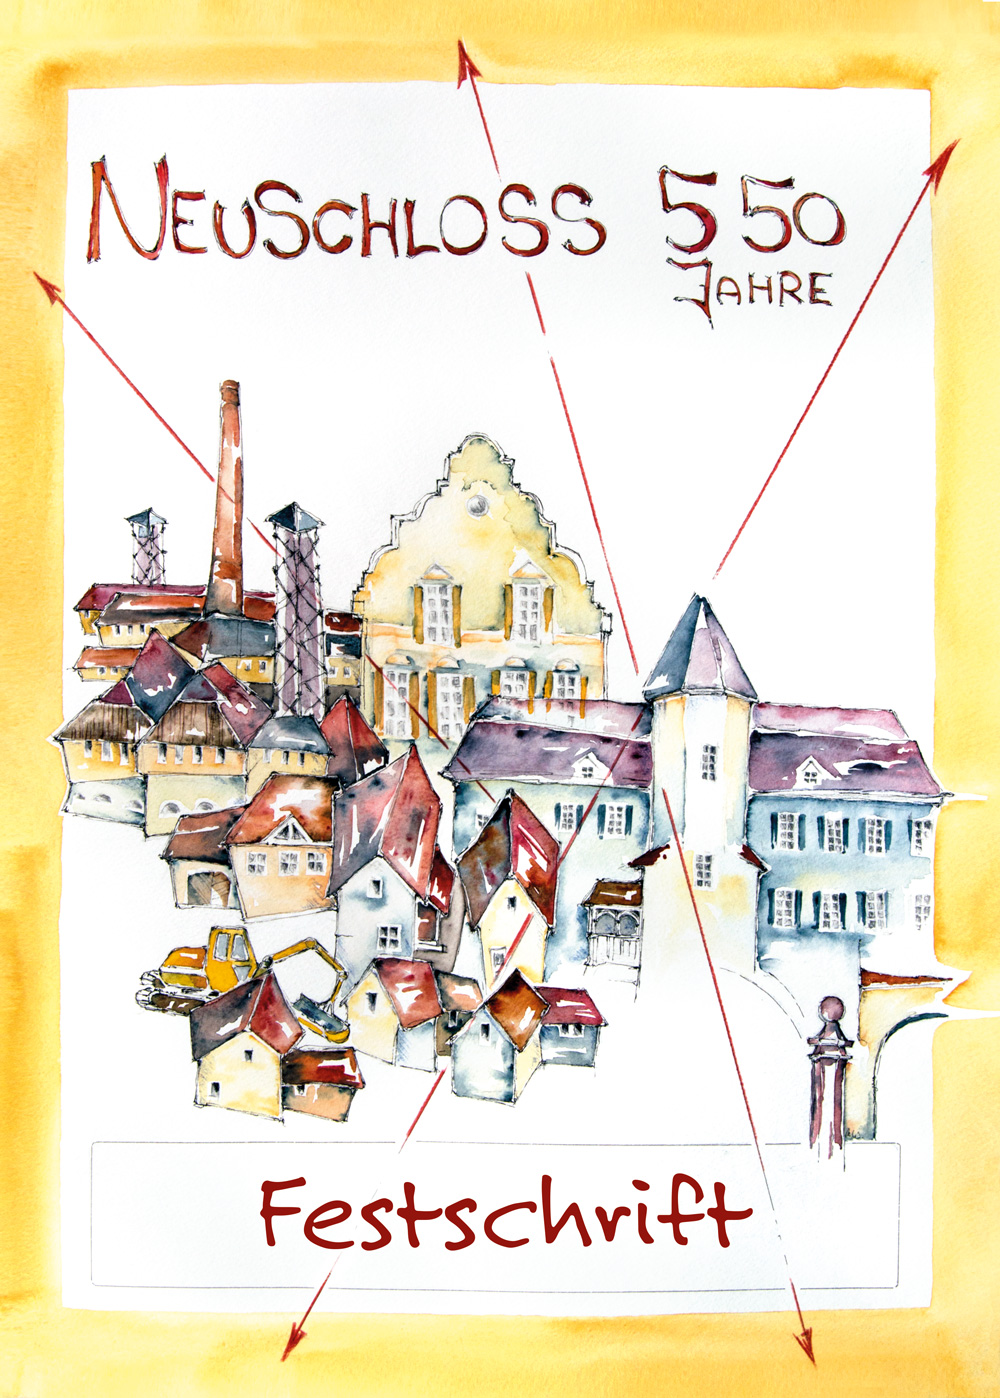 Festschrift 550 Jahre Neuschloß